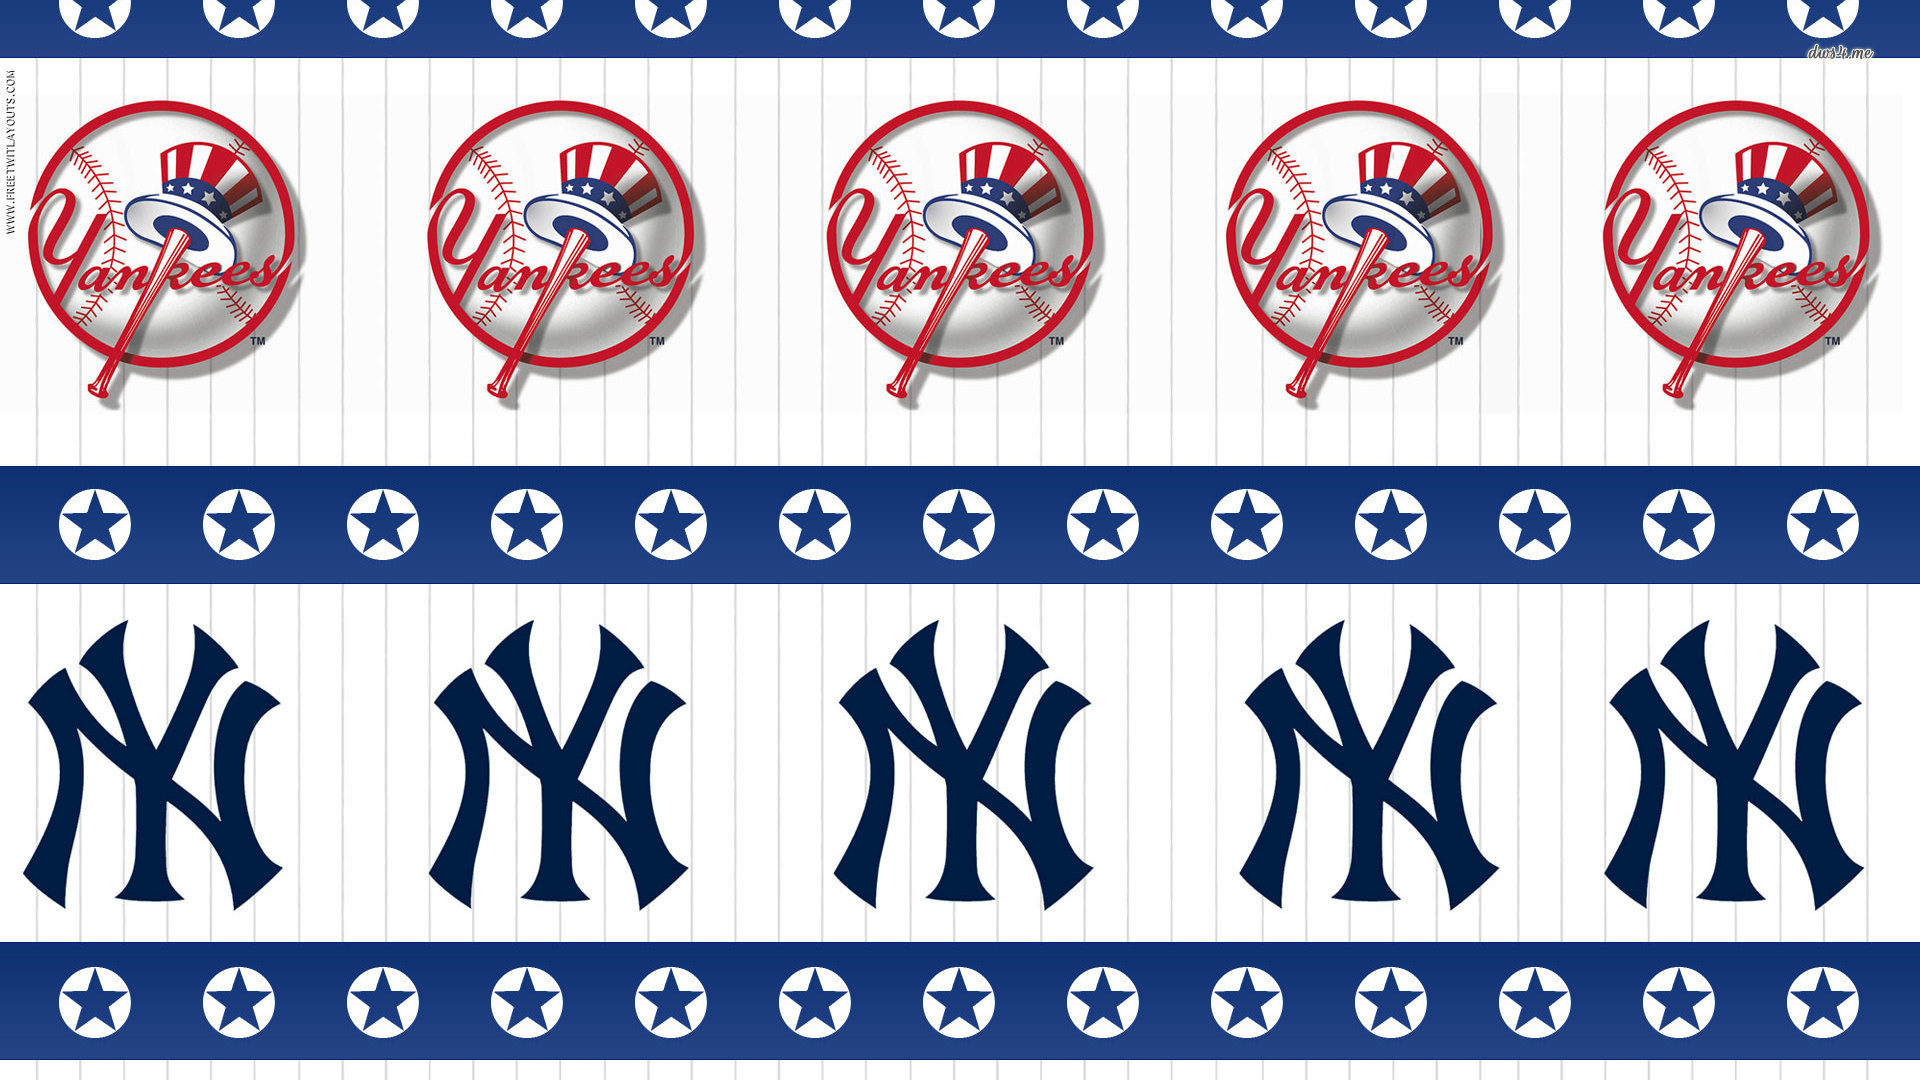 2000x1665 Gallery for - ny yankees android wallpaper